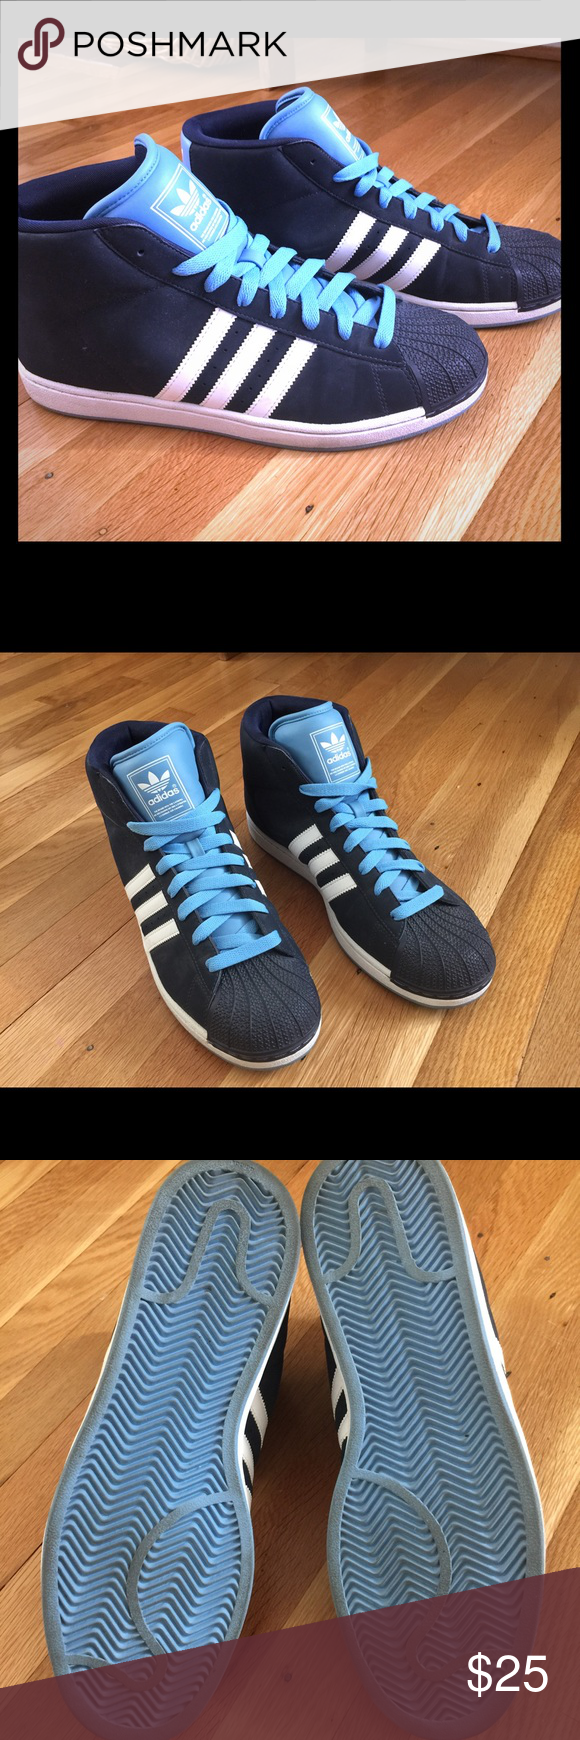 1833d6b7edd9 Men s Adidas Shell Toe High Top Sneakers Men s Adidas Shell Toe High Top  Sneakers in Navy Blue with Light Blue Laces. Size 12.5. Worn 2-3 times  only